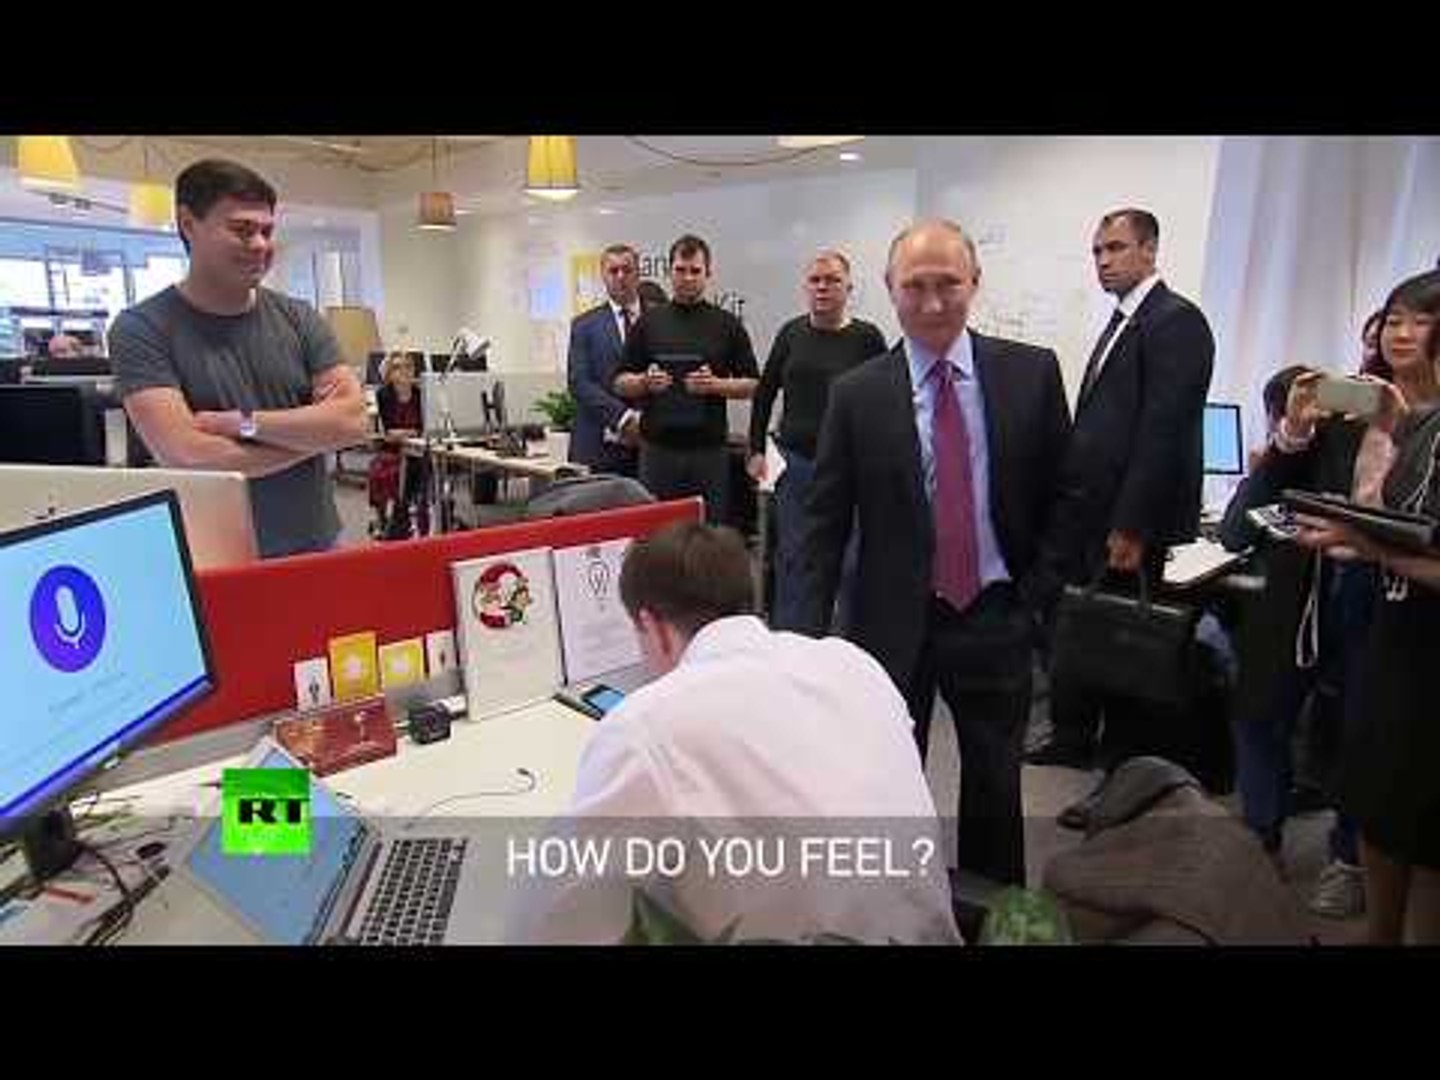 'There's nothing better than cats!' Yandex virtual assistant tells Putin